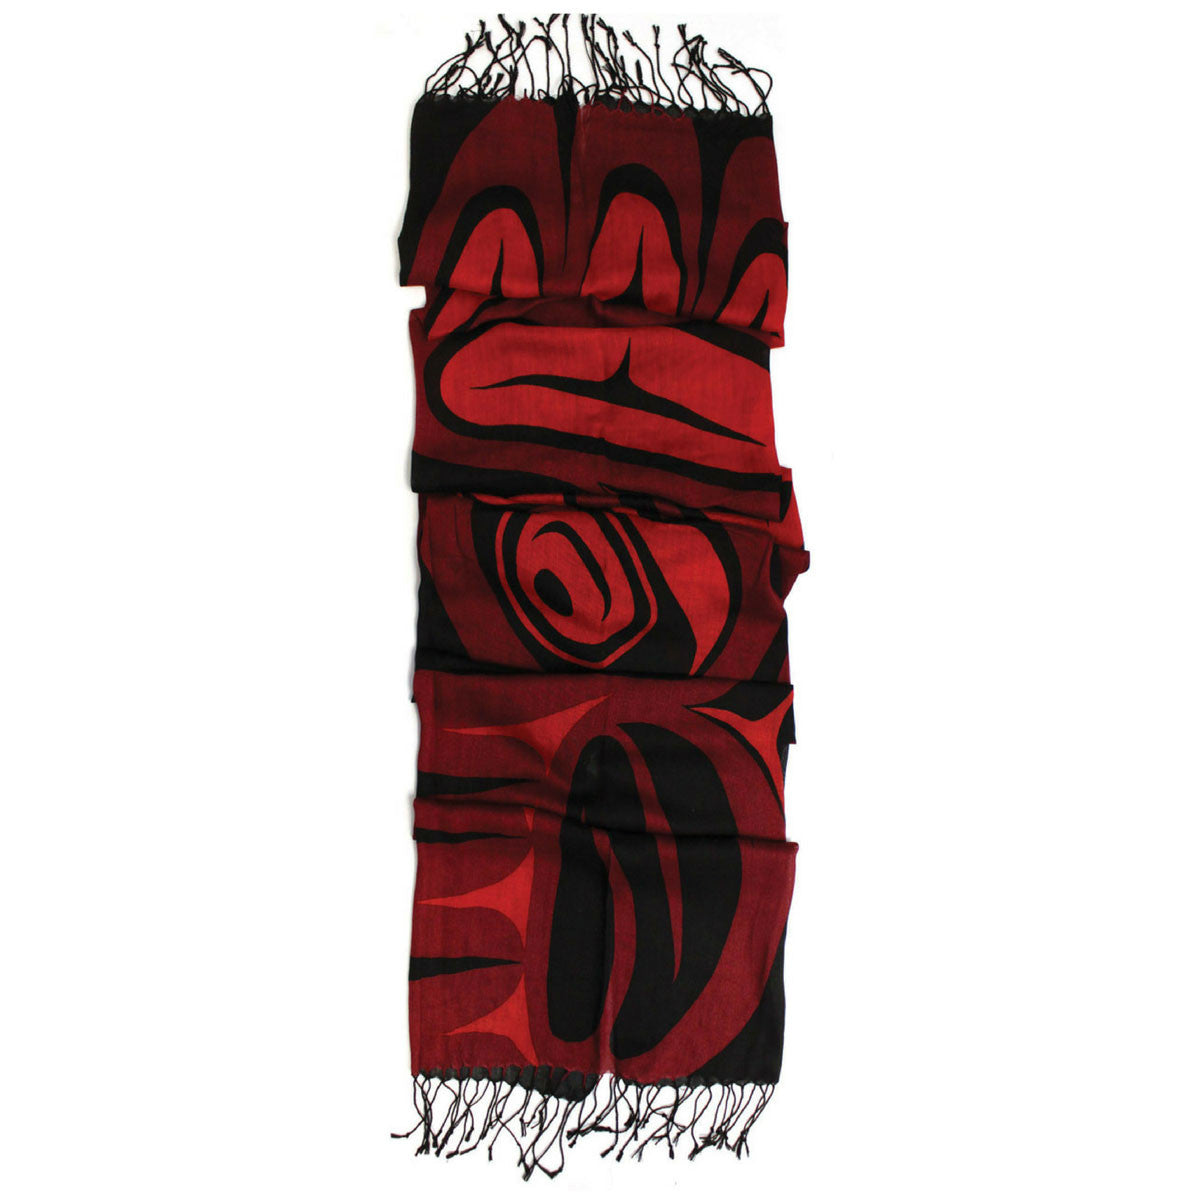 Frist Nation Art Printed Scarf - Eagle Blessing